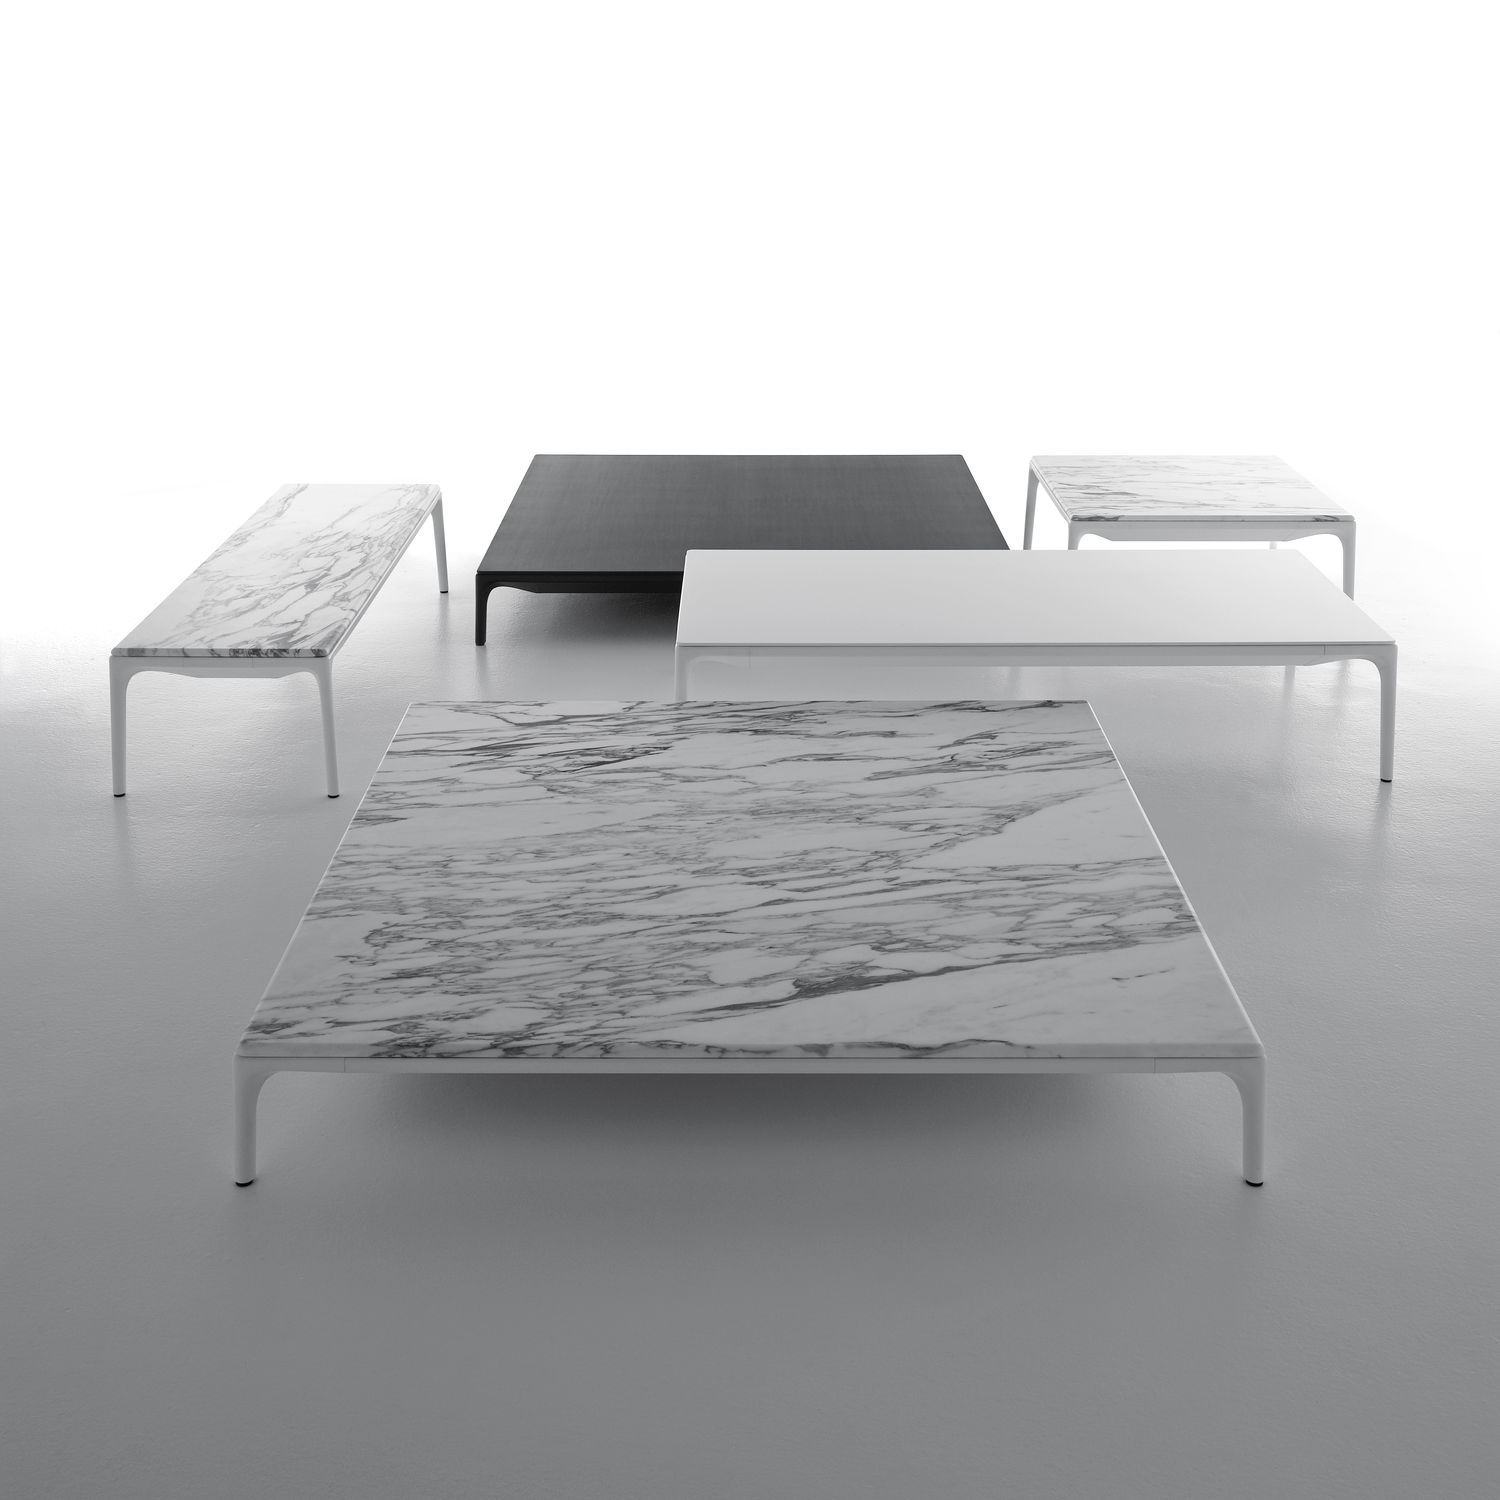 Resin Couchtisch Contemporary Coffee Table Lacquered Aluminum Resin